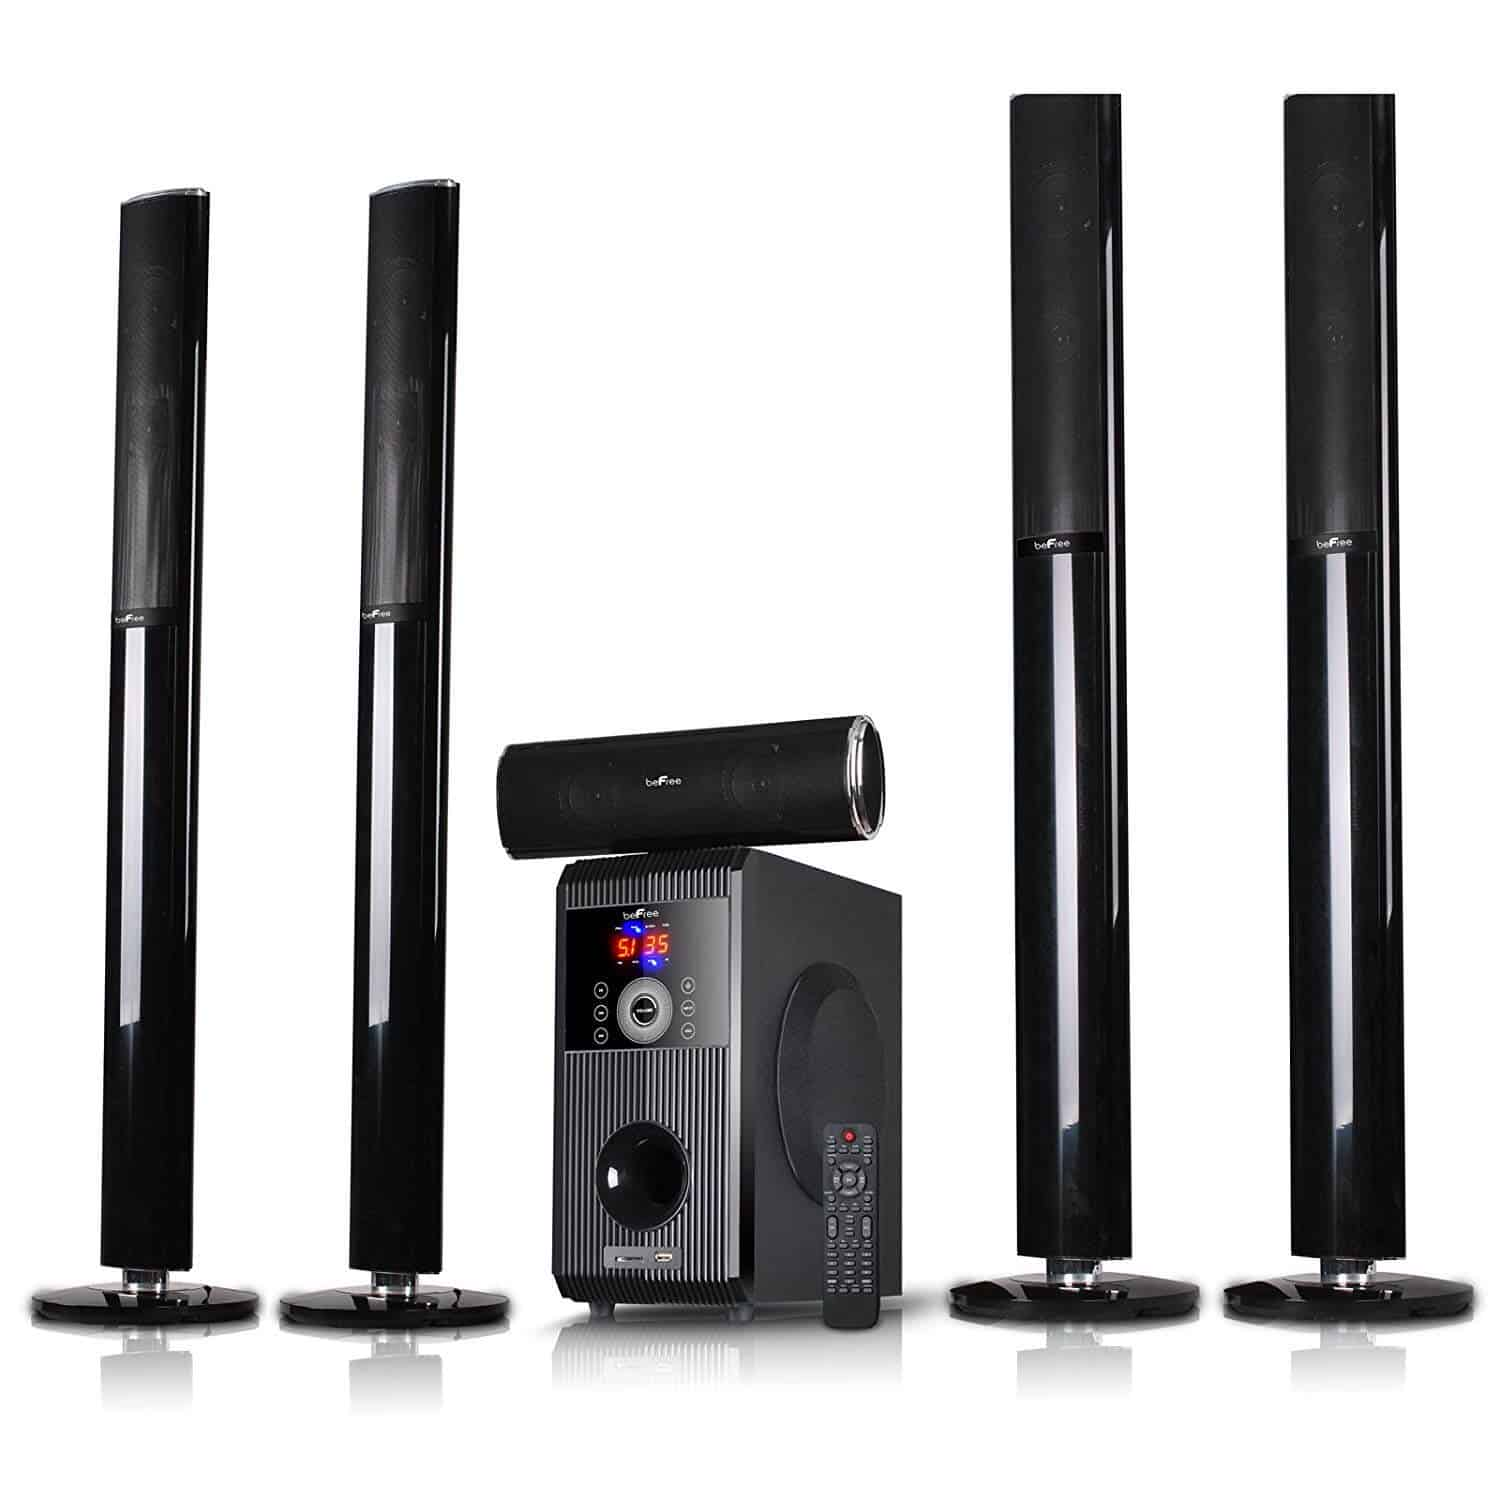 BeFree home tower speakers surround sound system